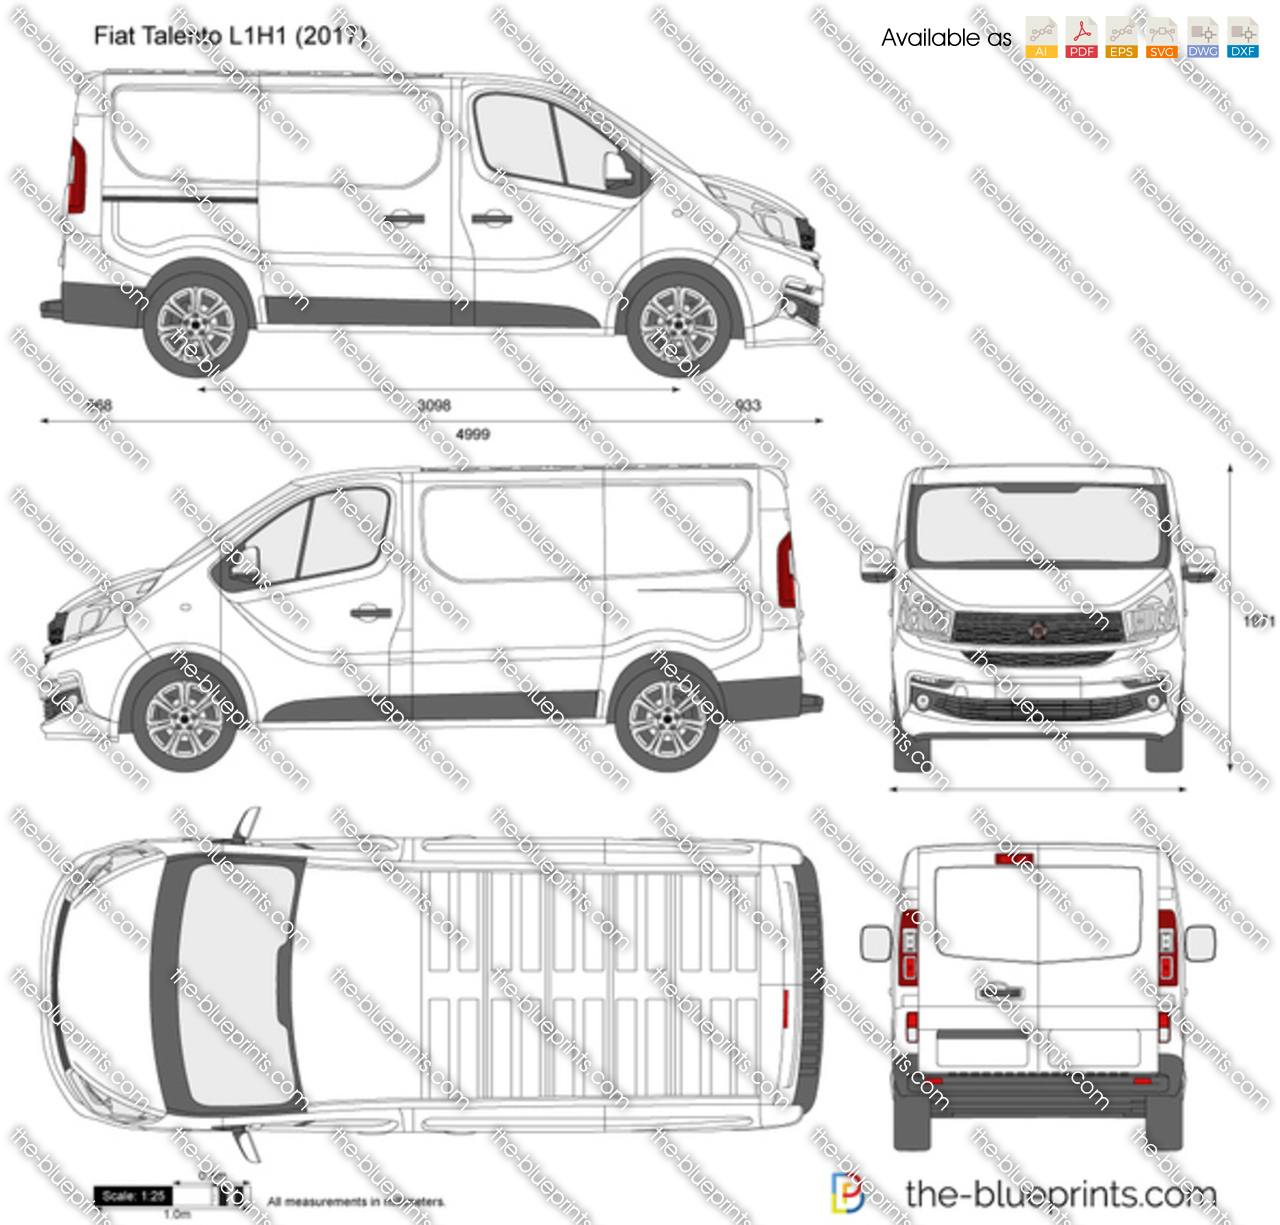 fiat talento l1h1 vector drawing